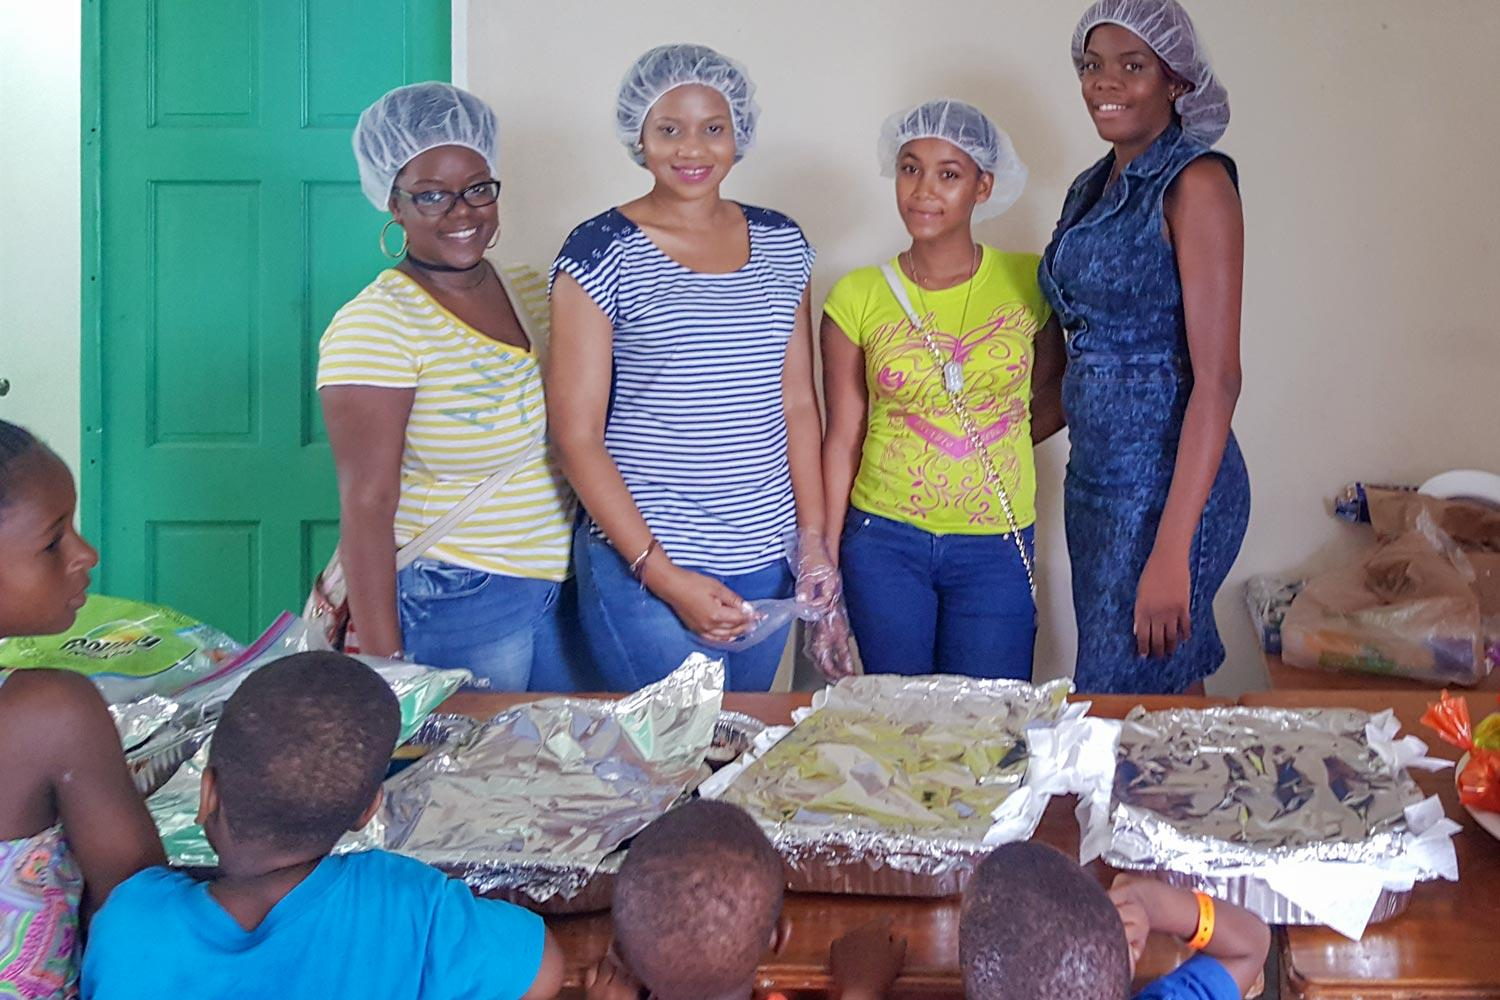 Nursing graduate student Christina Ross, second from left, lead a relief effort to her home of Antigua, which was ravaged by Hurricane Irma. She and other volunteers also made and shared treats with local children.